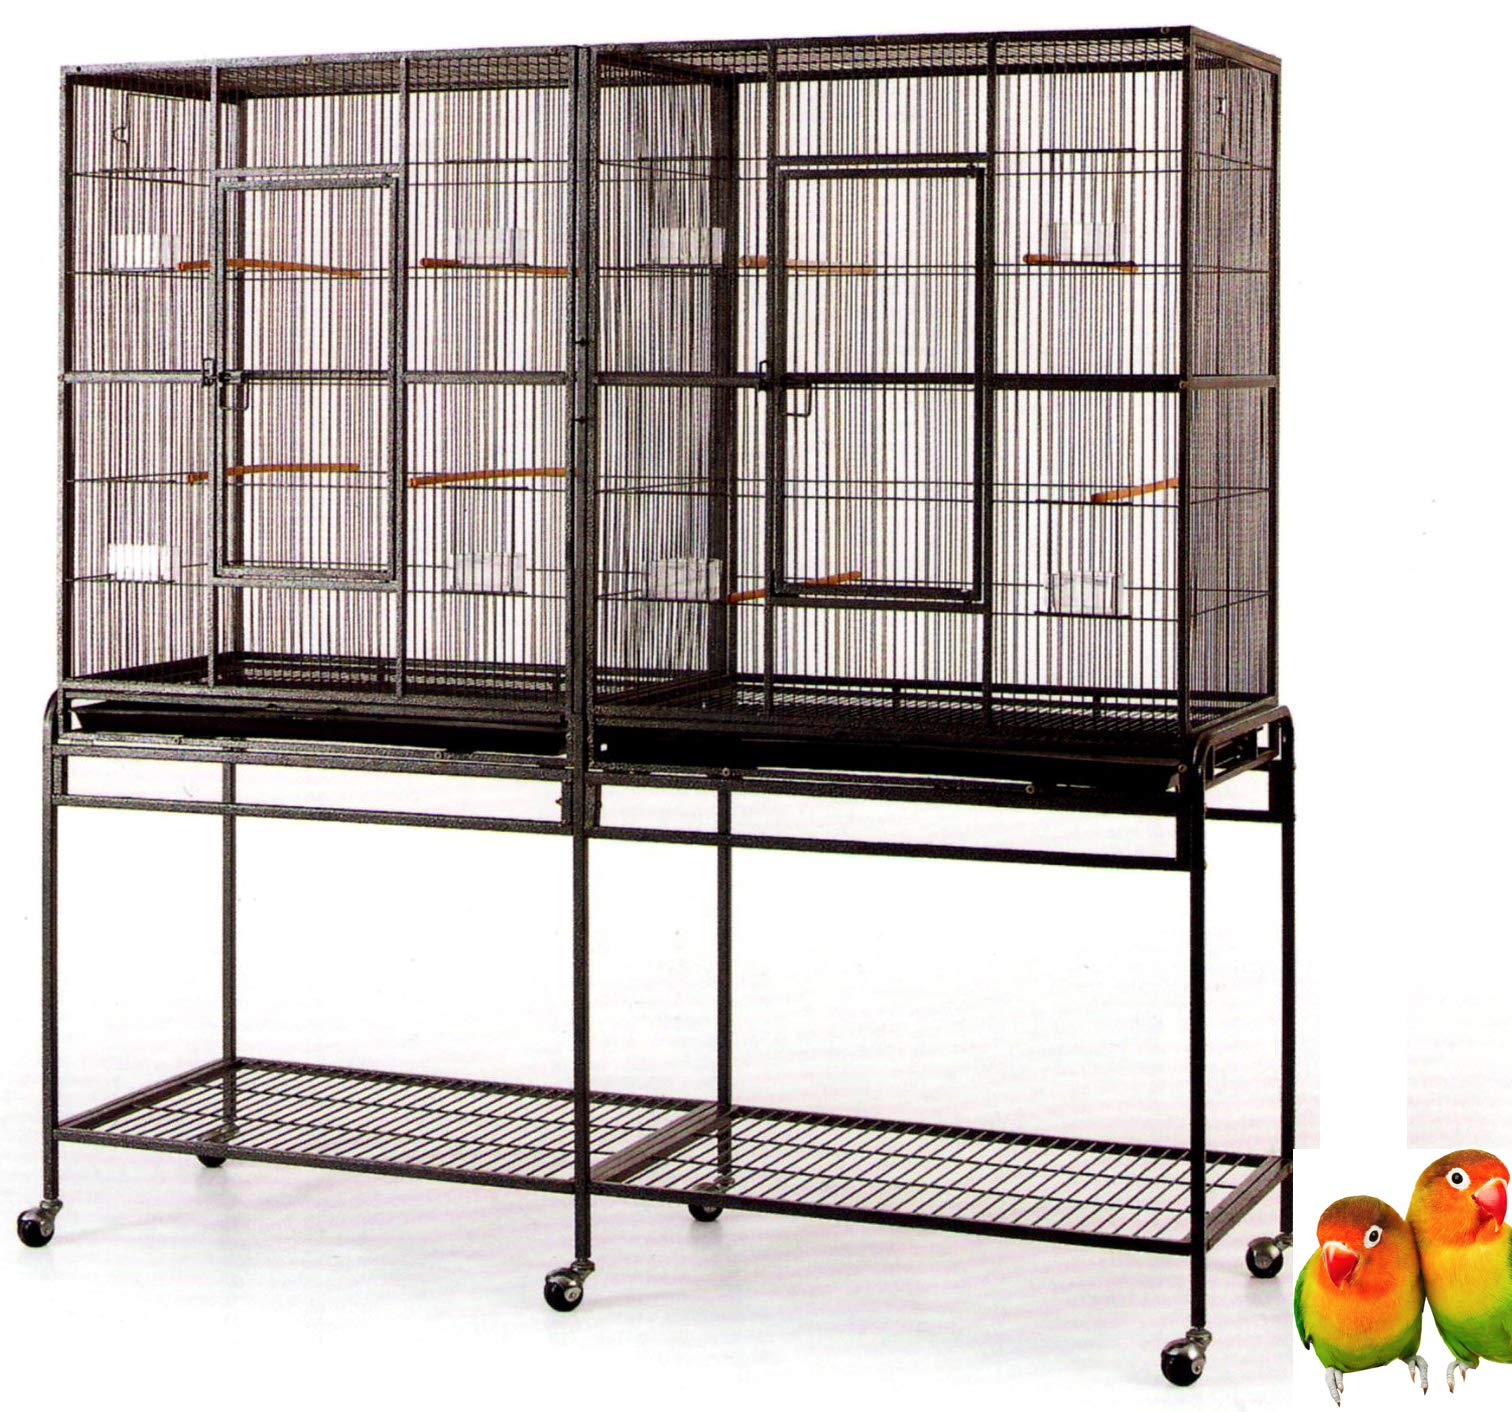 Mcage Large Double Flight Bird Wrought Iron Double Cage w/Slide Out Divider 3 Levels Bird Parrot Cage Cockatiel Conure Bird Cage 63'' Lx19 Dx64 H W/Stand on Wheels (63'' Lx19 Dx64 H, Black Vein) by Mcage